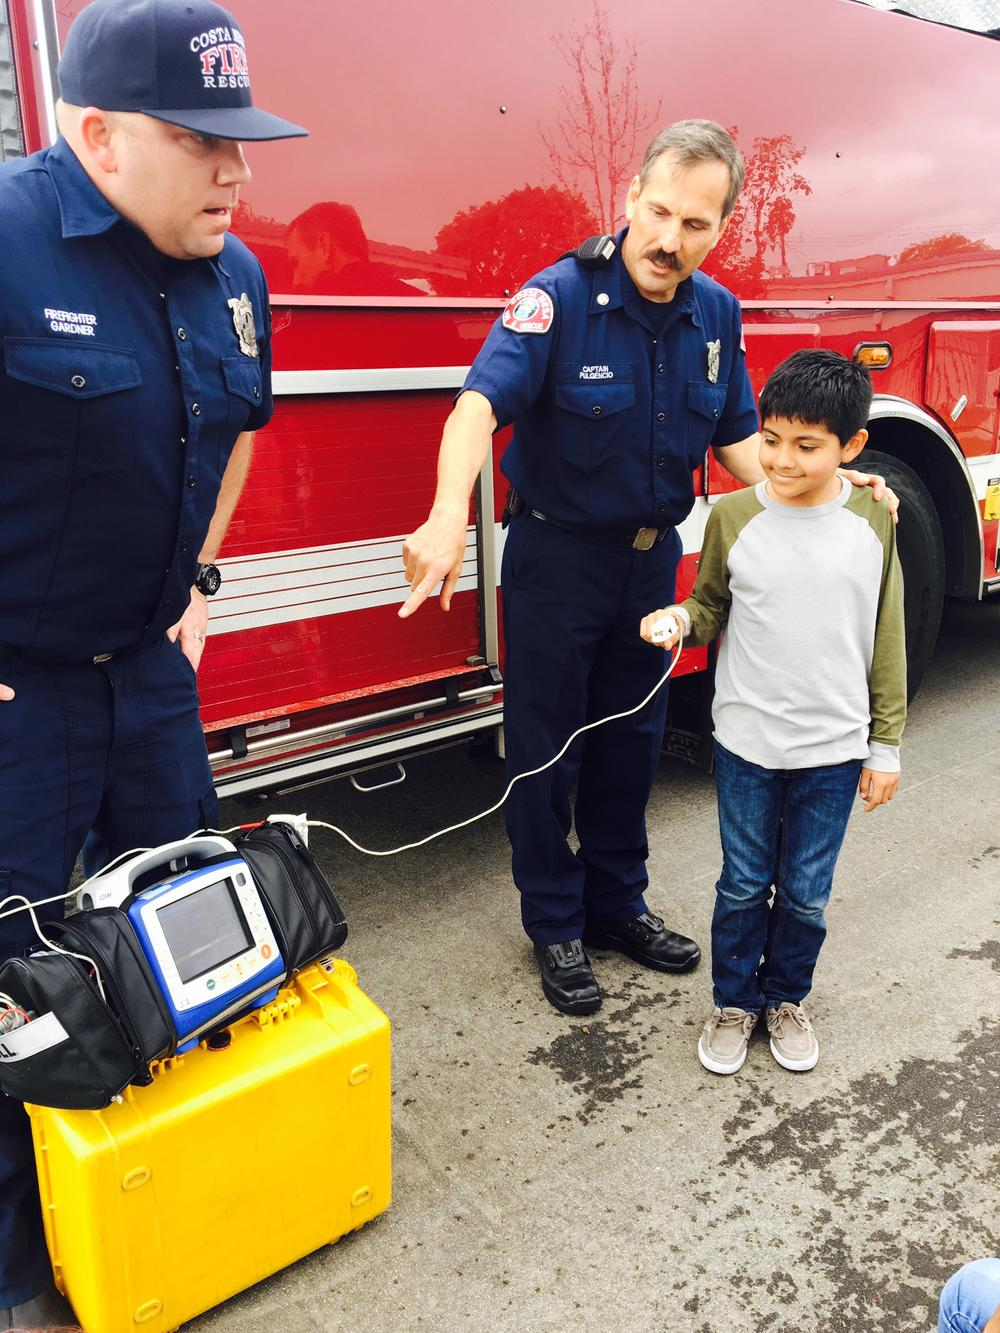 A student has his heart rate and oxygen level checked as a demonstration by the firefighters